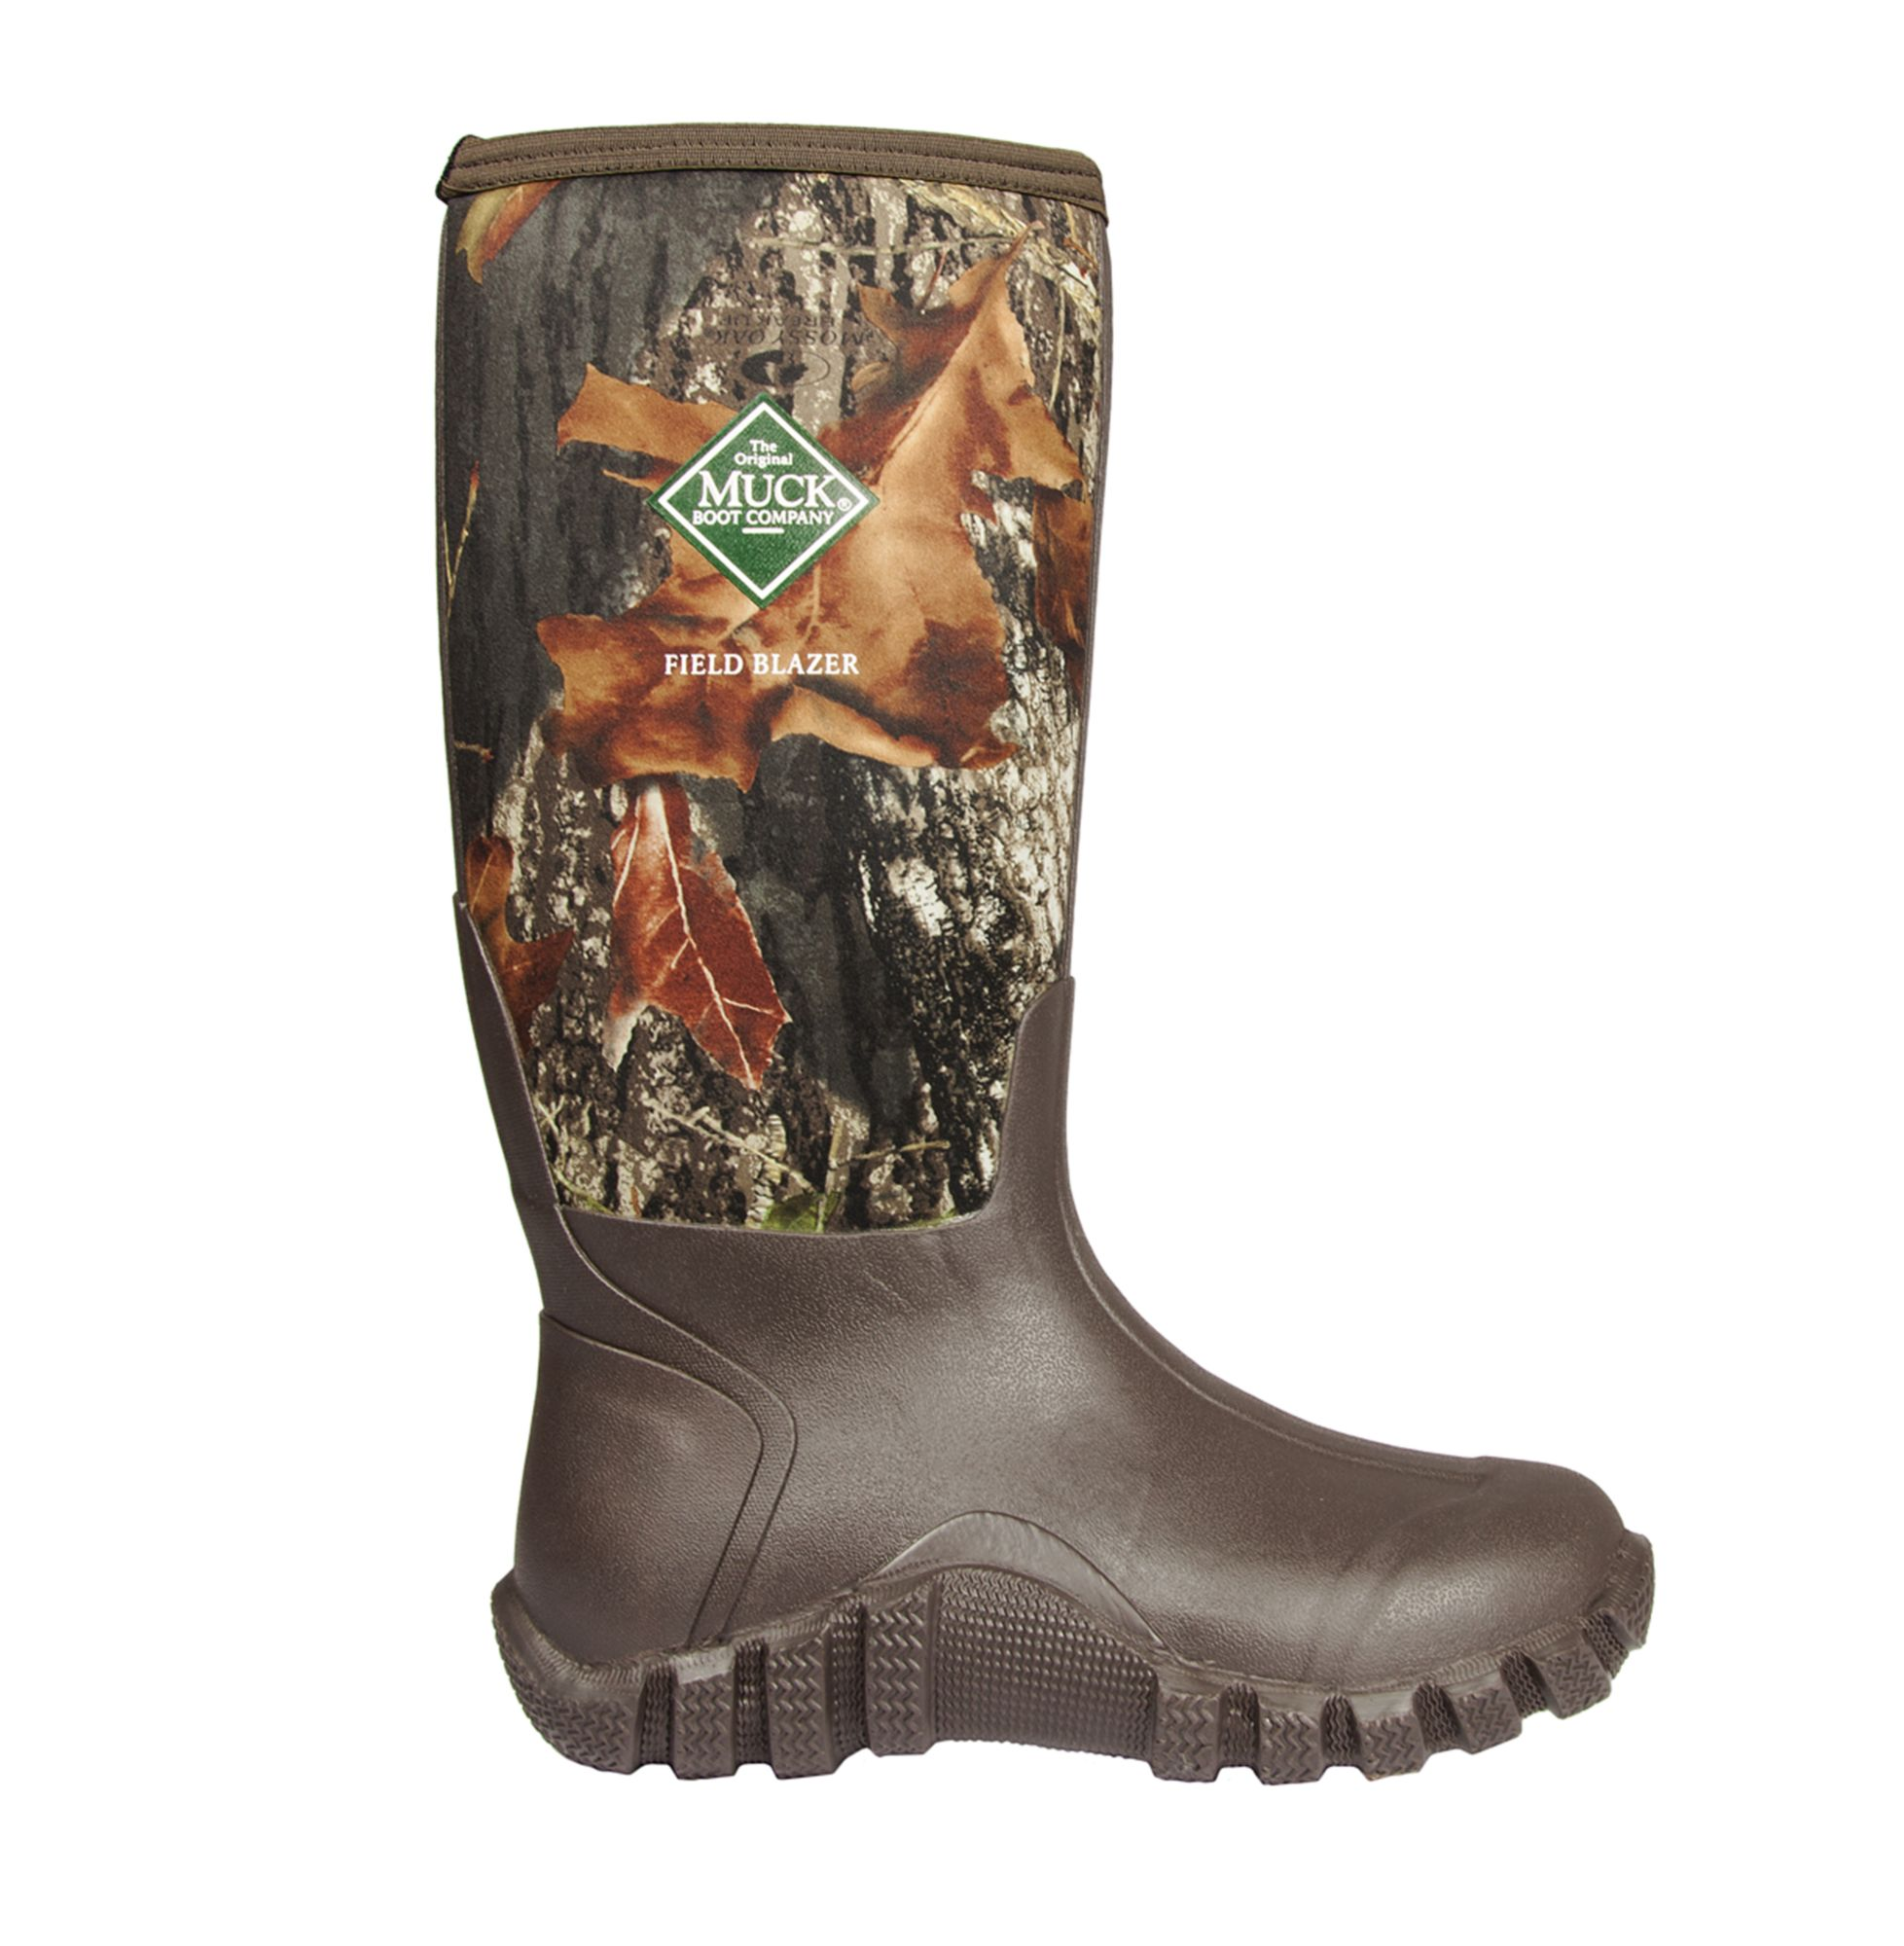 Muck Boot Men's Fieldblazer Rubber Hunting Boots| DICK'S Sporting ...